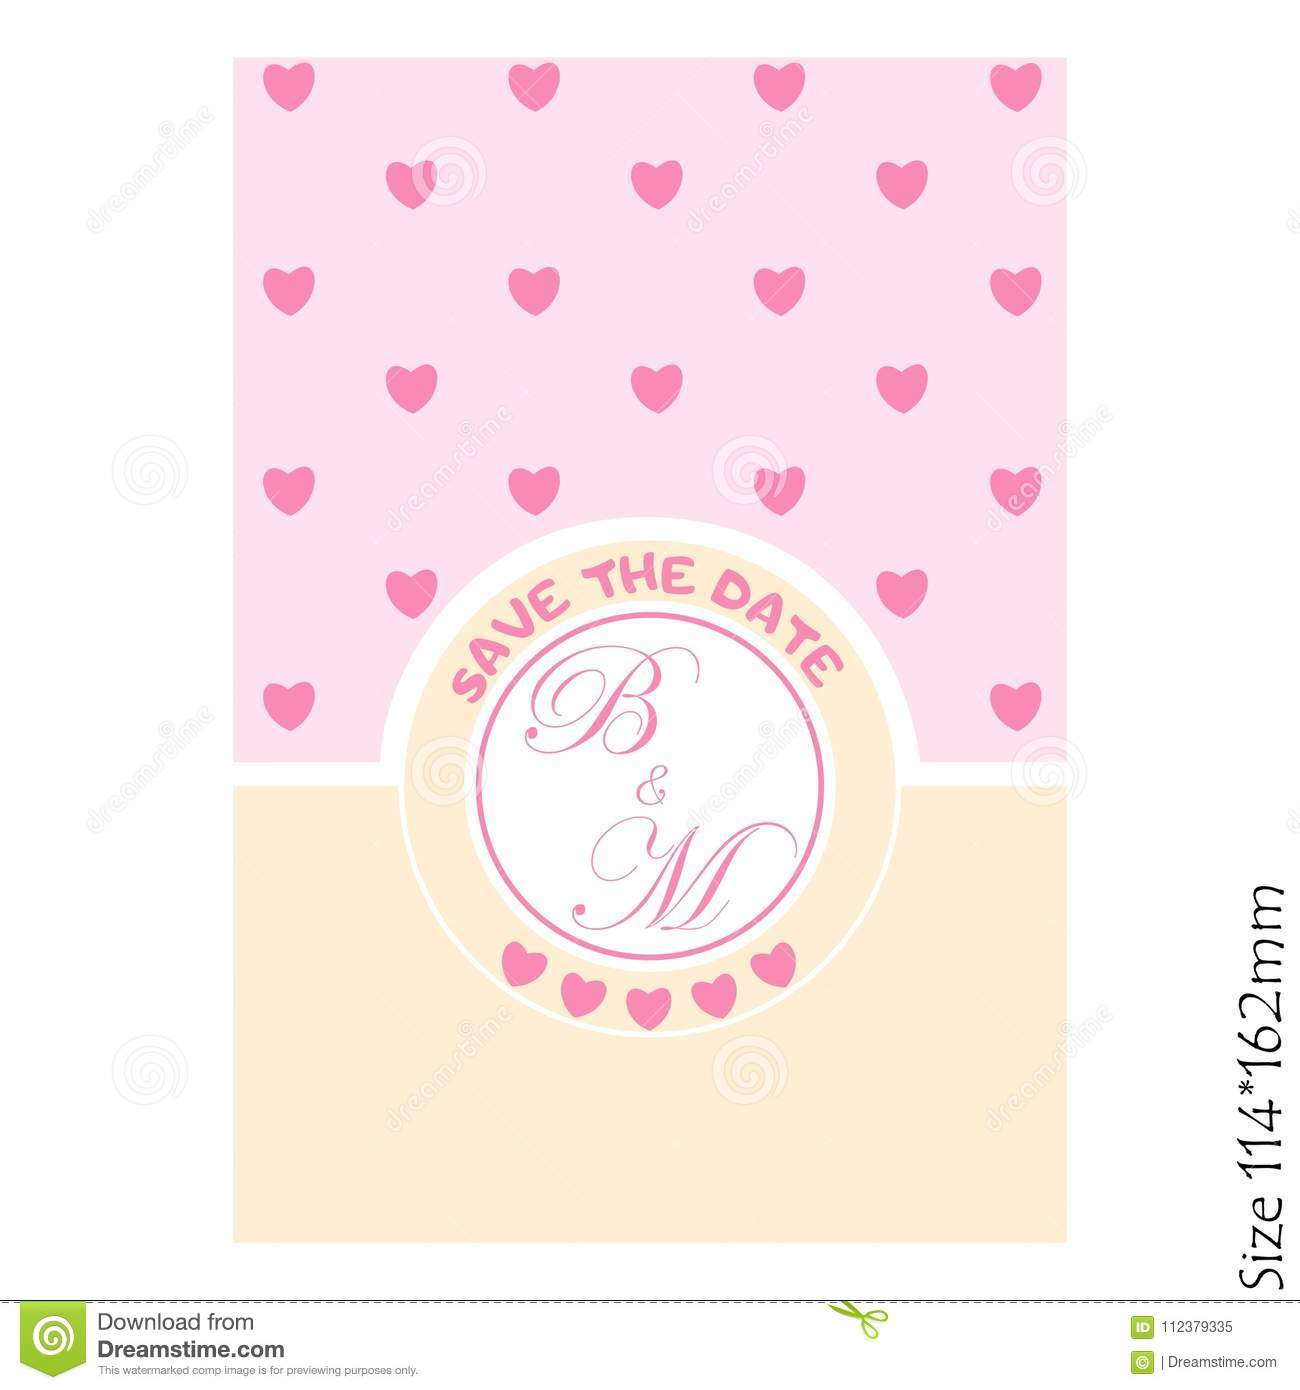 Wedding Invitations - save the date-with hearts cards.